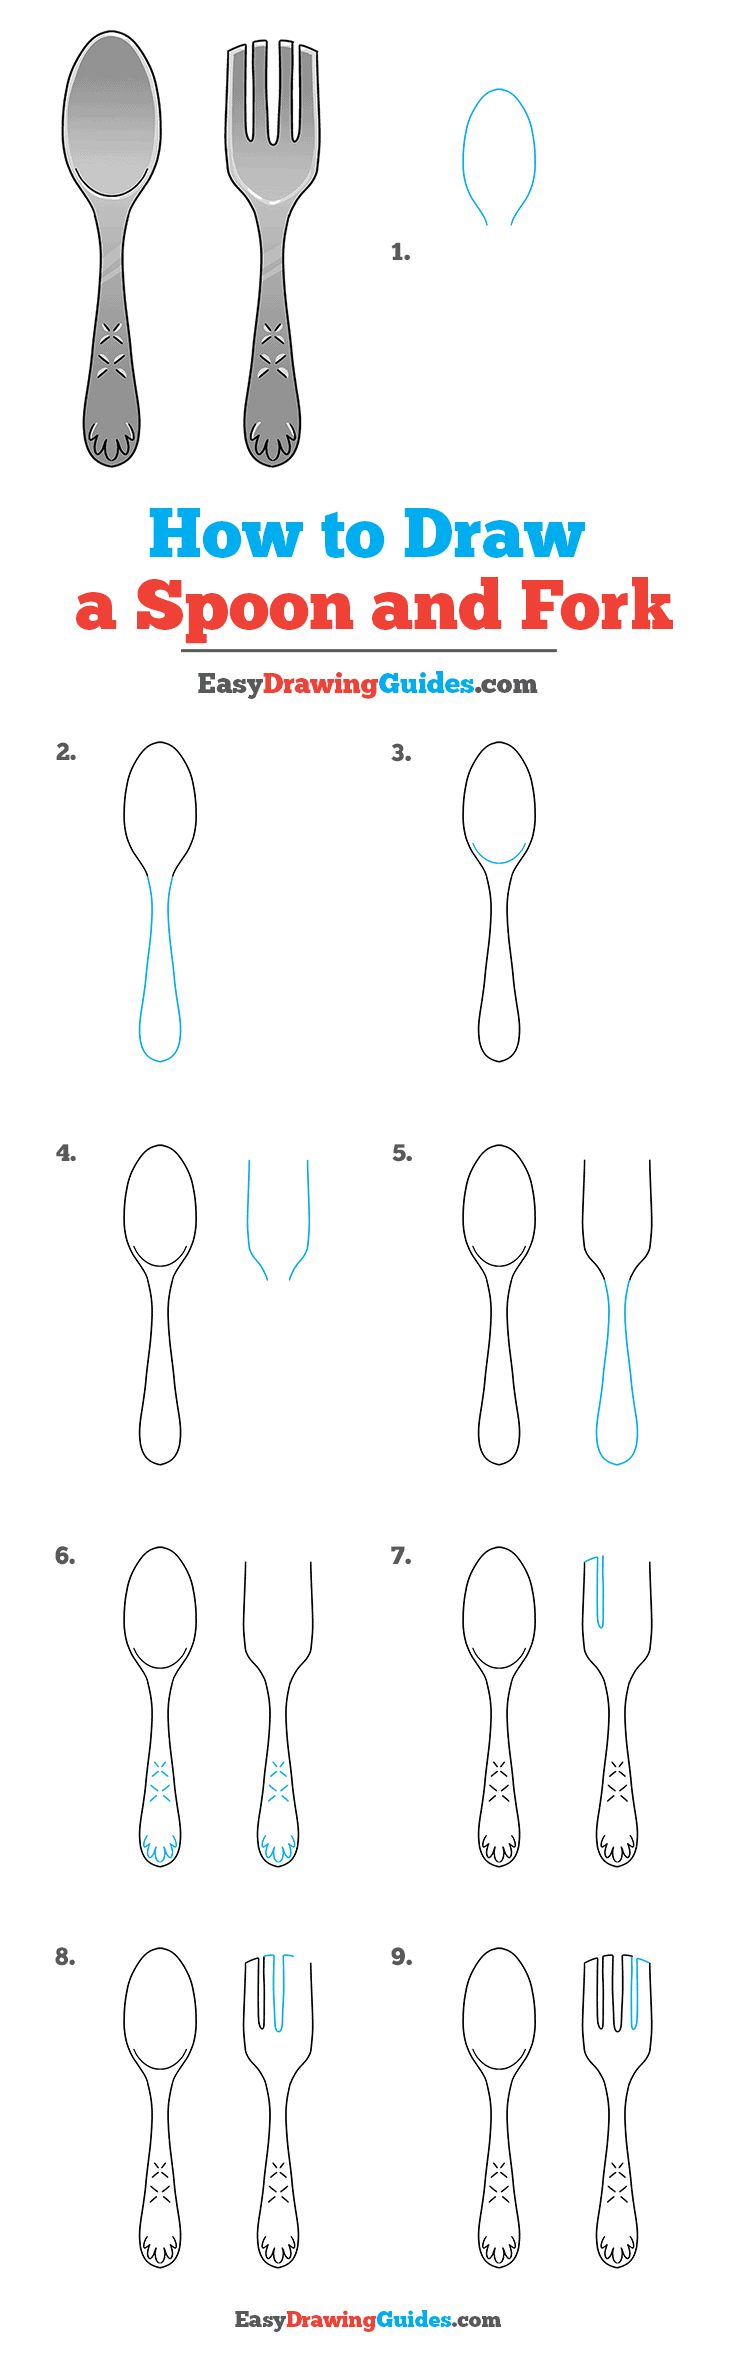 How to Draw a Spoon and Fork Step by Step Tutorial Image